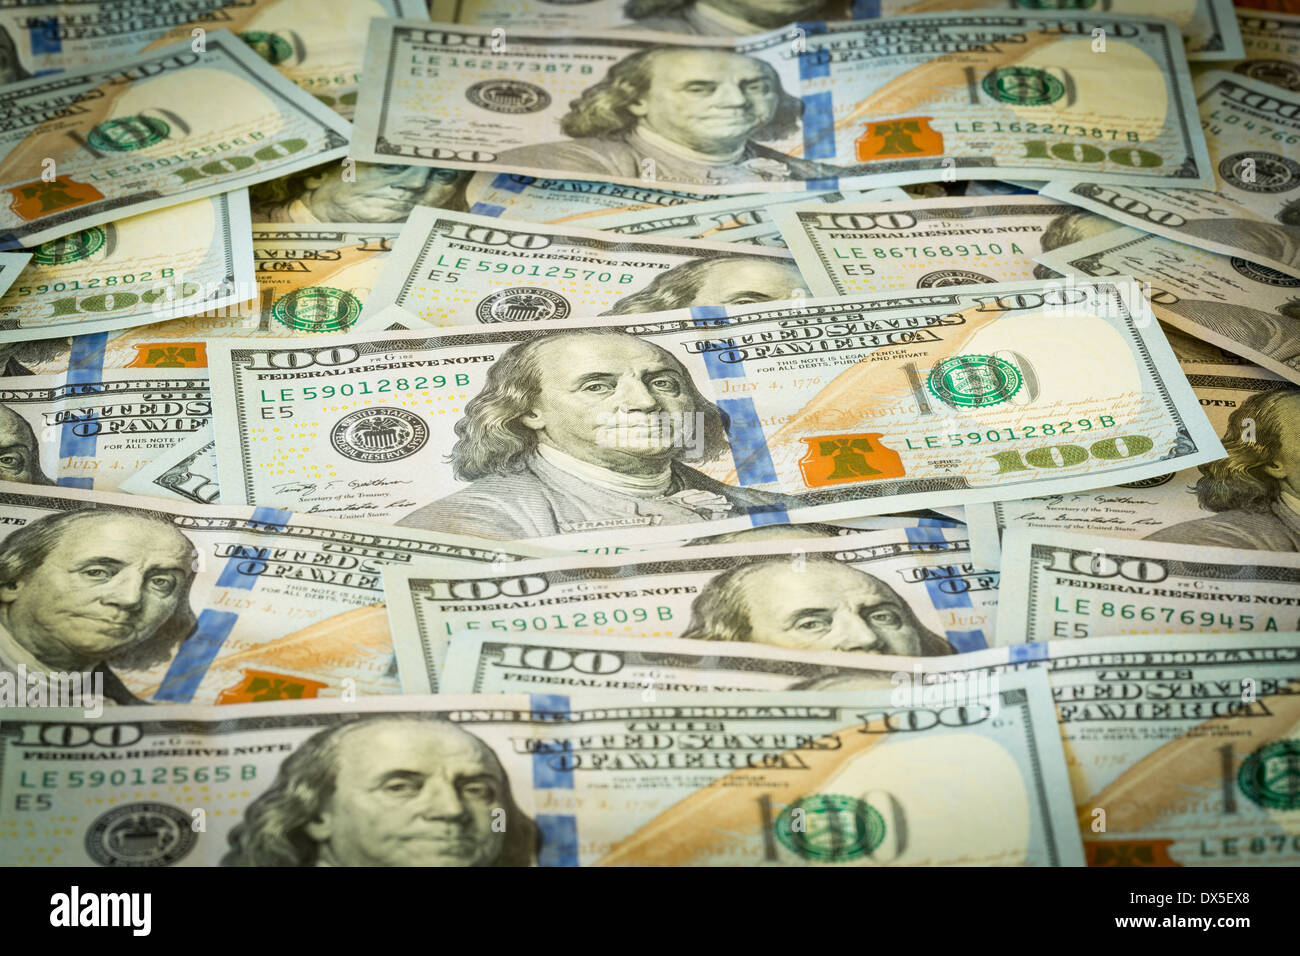 New design of US currency one hundred dollar bills - Stock Image